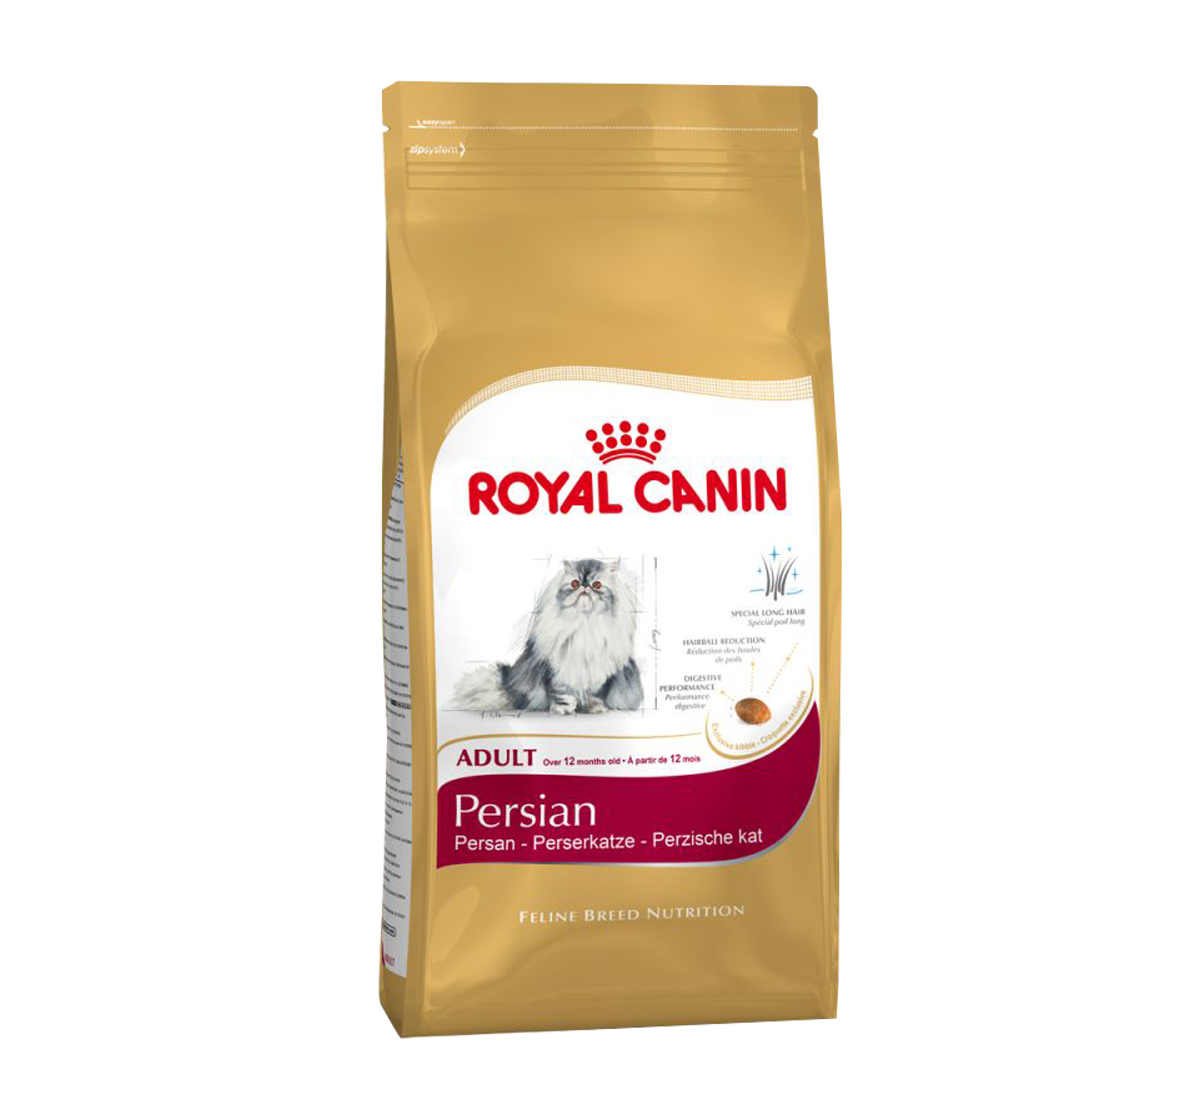 royal canin persian adult 400 gms dogspot online pet supply store. Black Bedroom Furniture Sets. Home Design Ideas